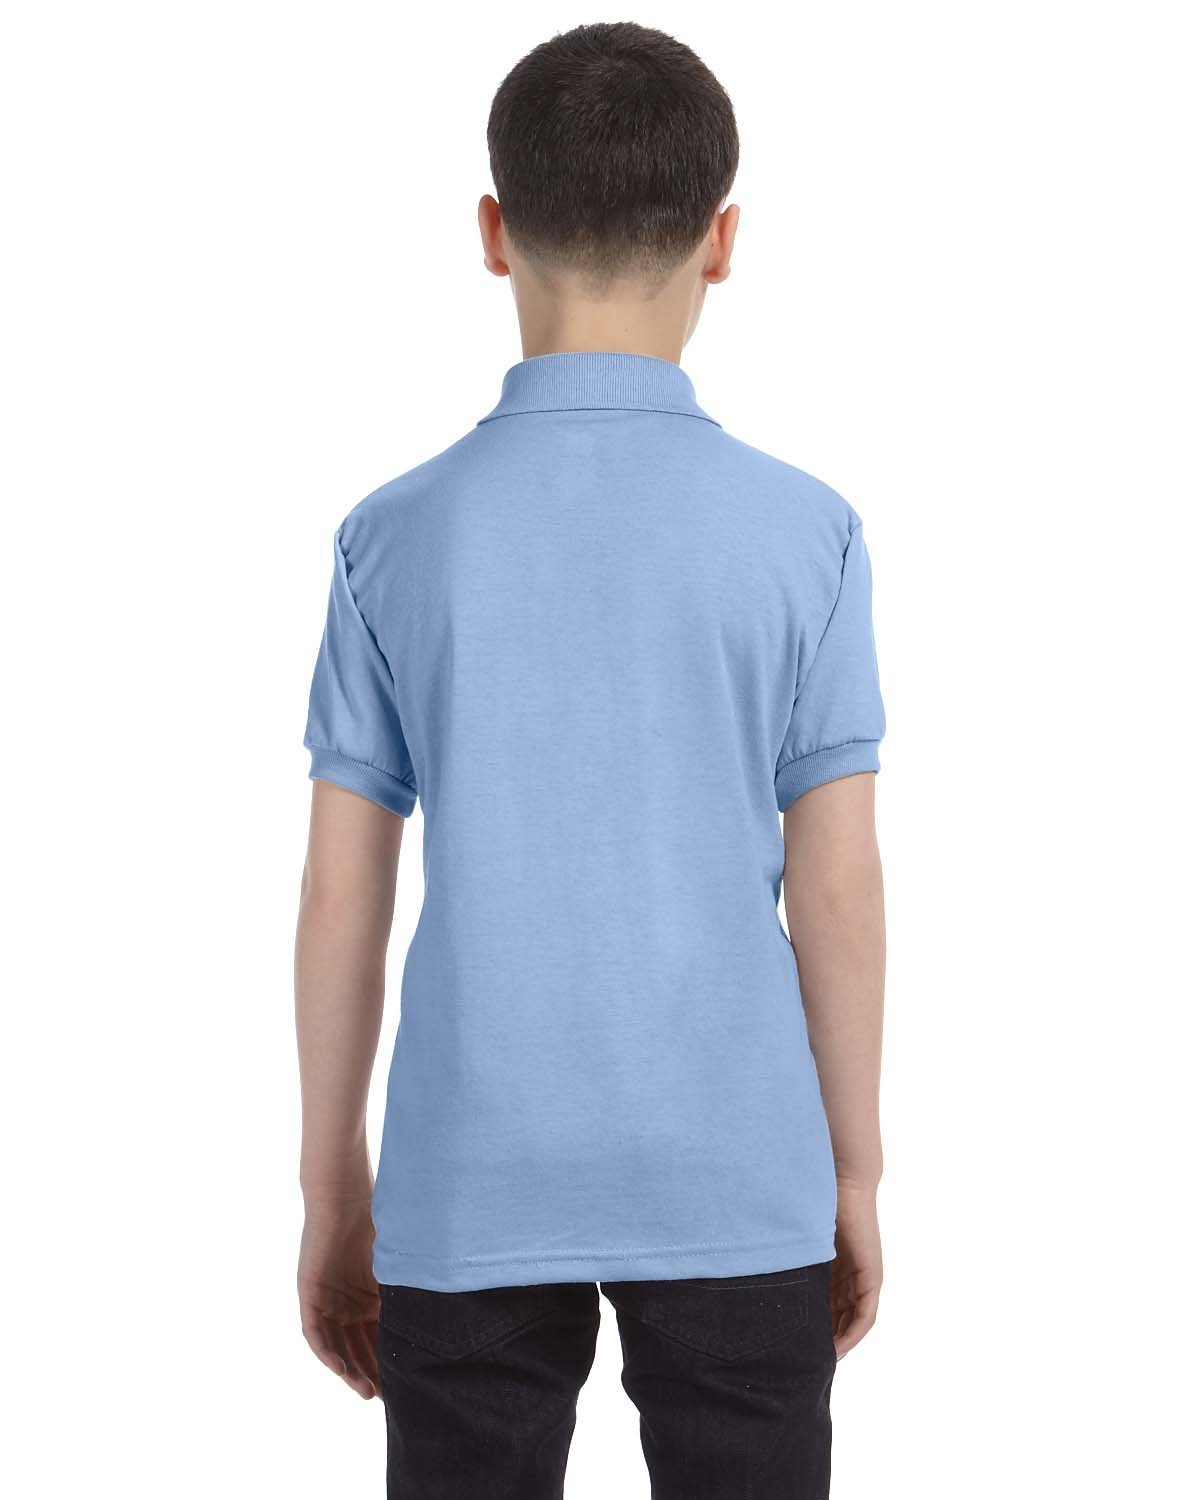 054Y Hanes LIGHT BLUE